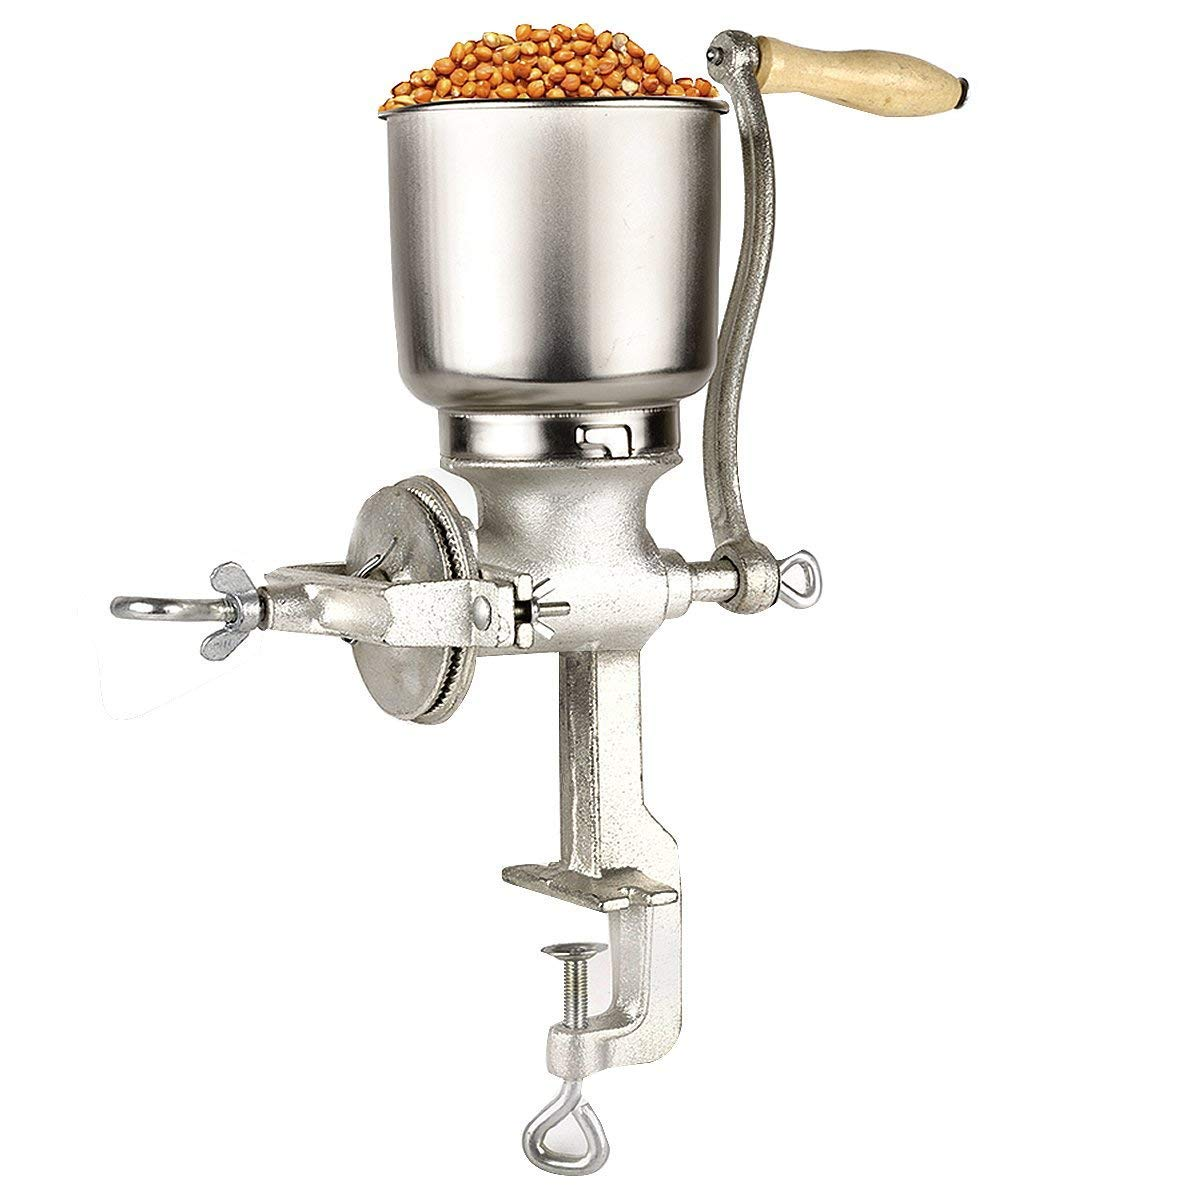 Molino De Maiz, Corn Grinder Manual Premium quality Cast Iron Spice with Table Clamp, Grain Hand Mill Flour Omaeon Om-500